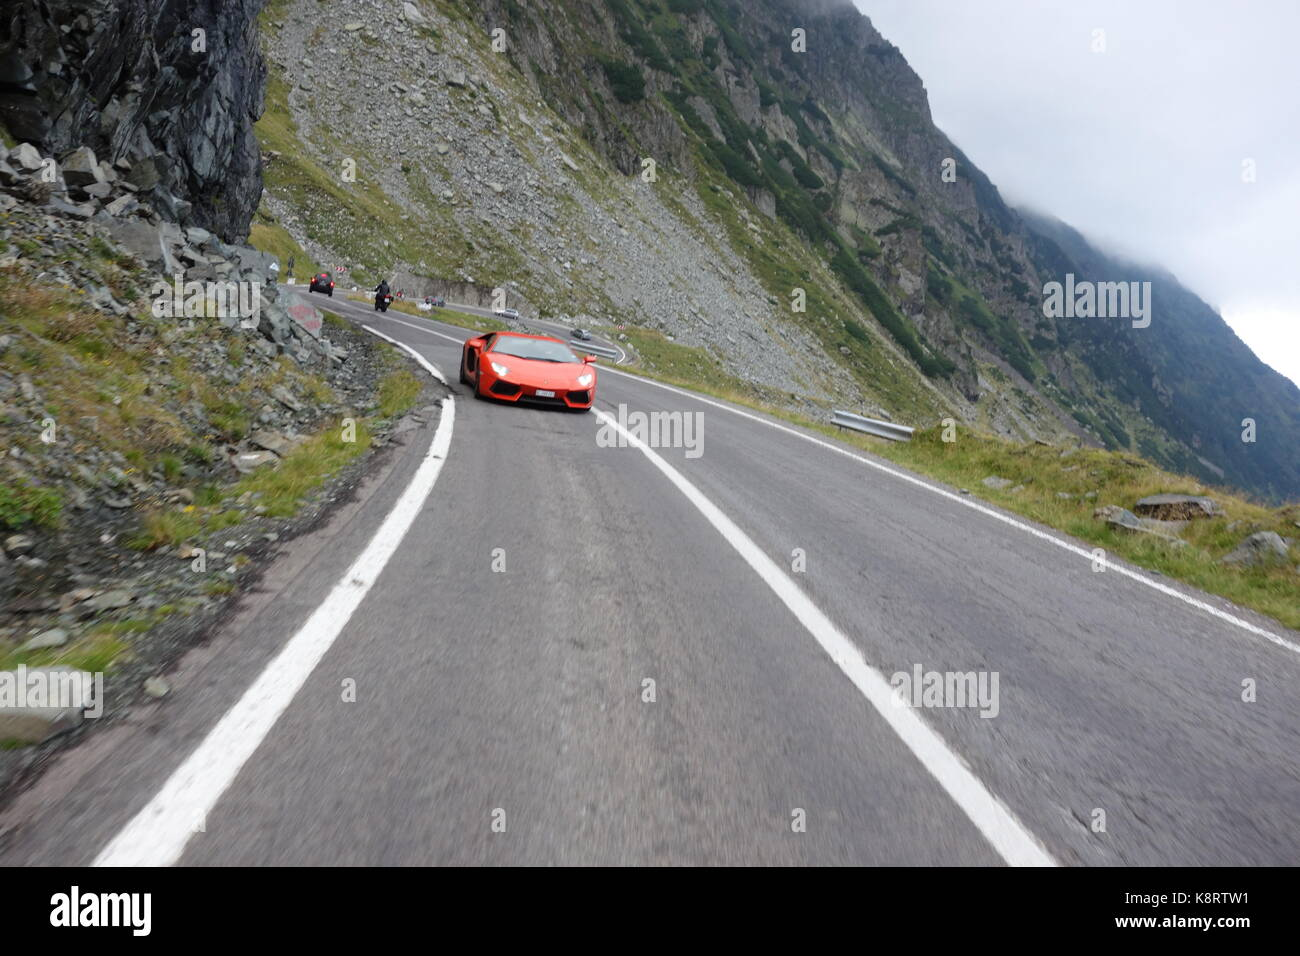 lamborghini on road stock photos lamborghini on road. Black Bedroom Furniture Sets. Home Design Ideas